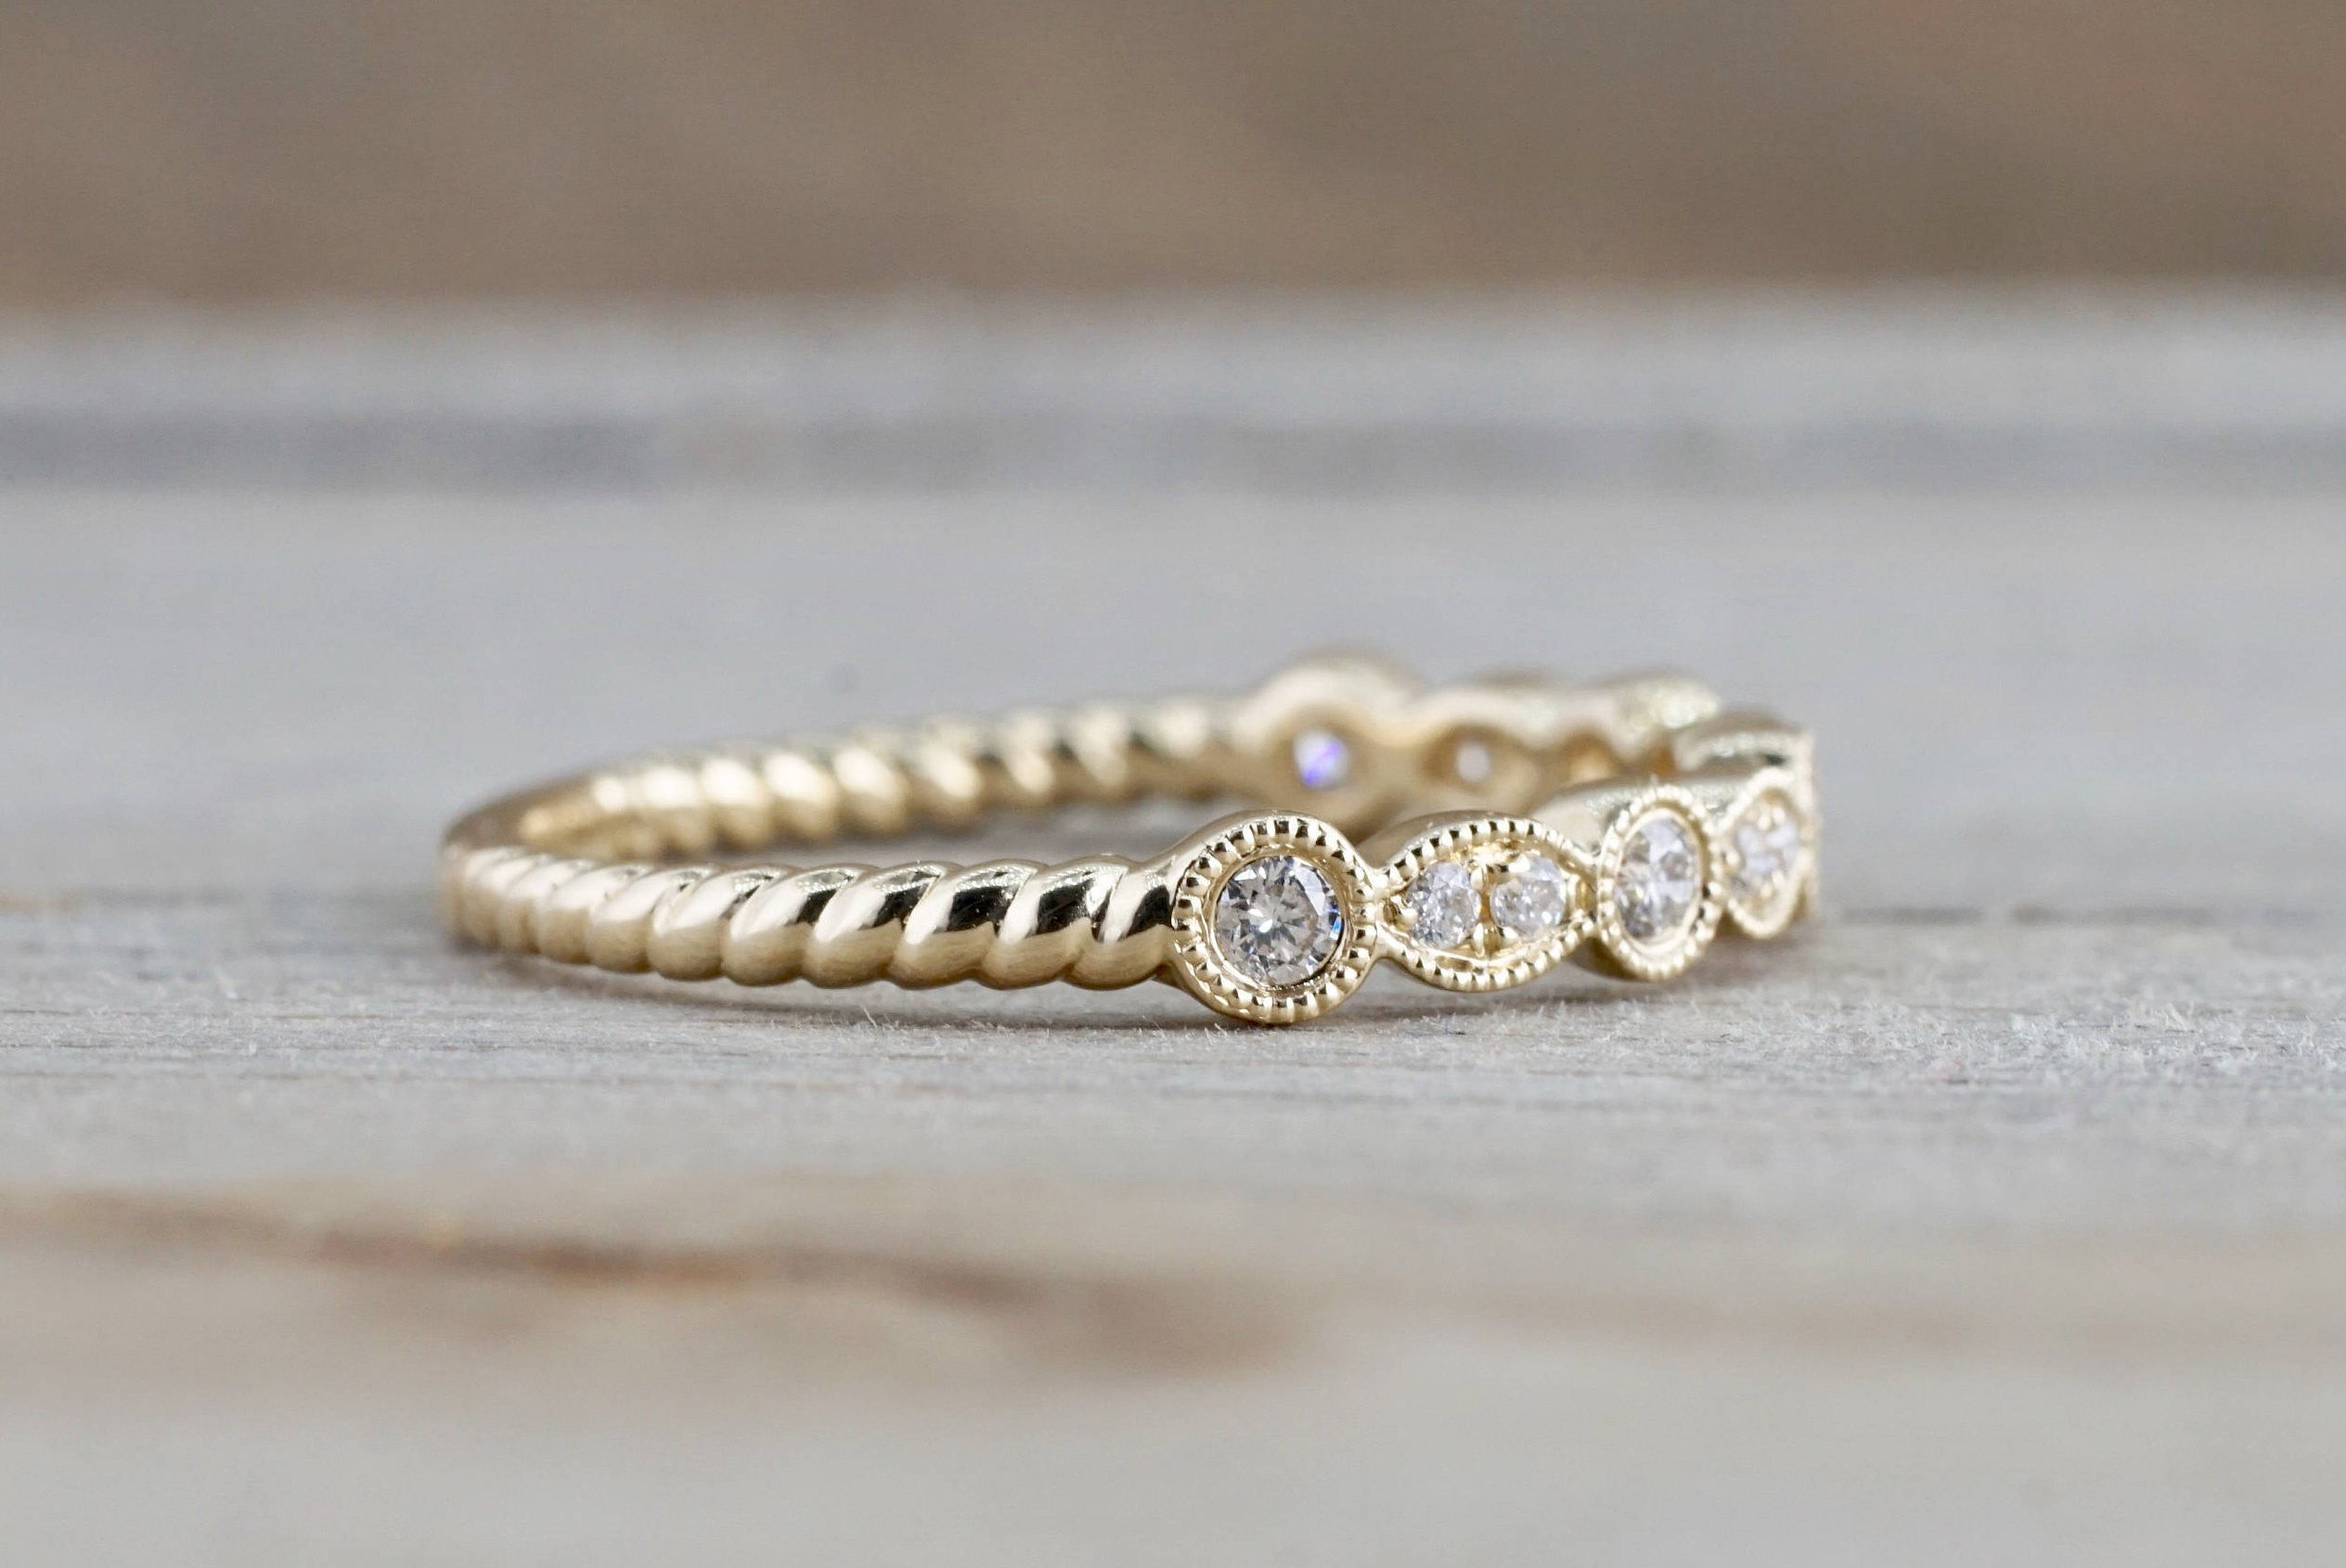 14k Yellow Gold Round Cut Diamond Rope Twined Vine Pave Stackable Stacking Art Deco Band Ring